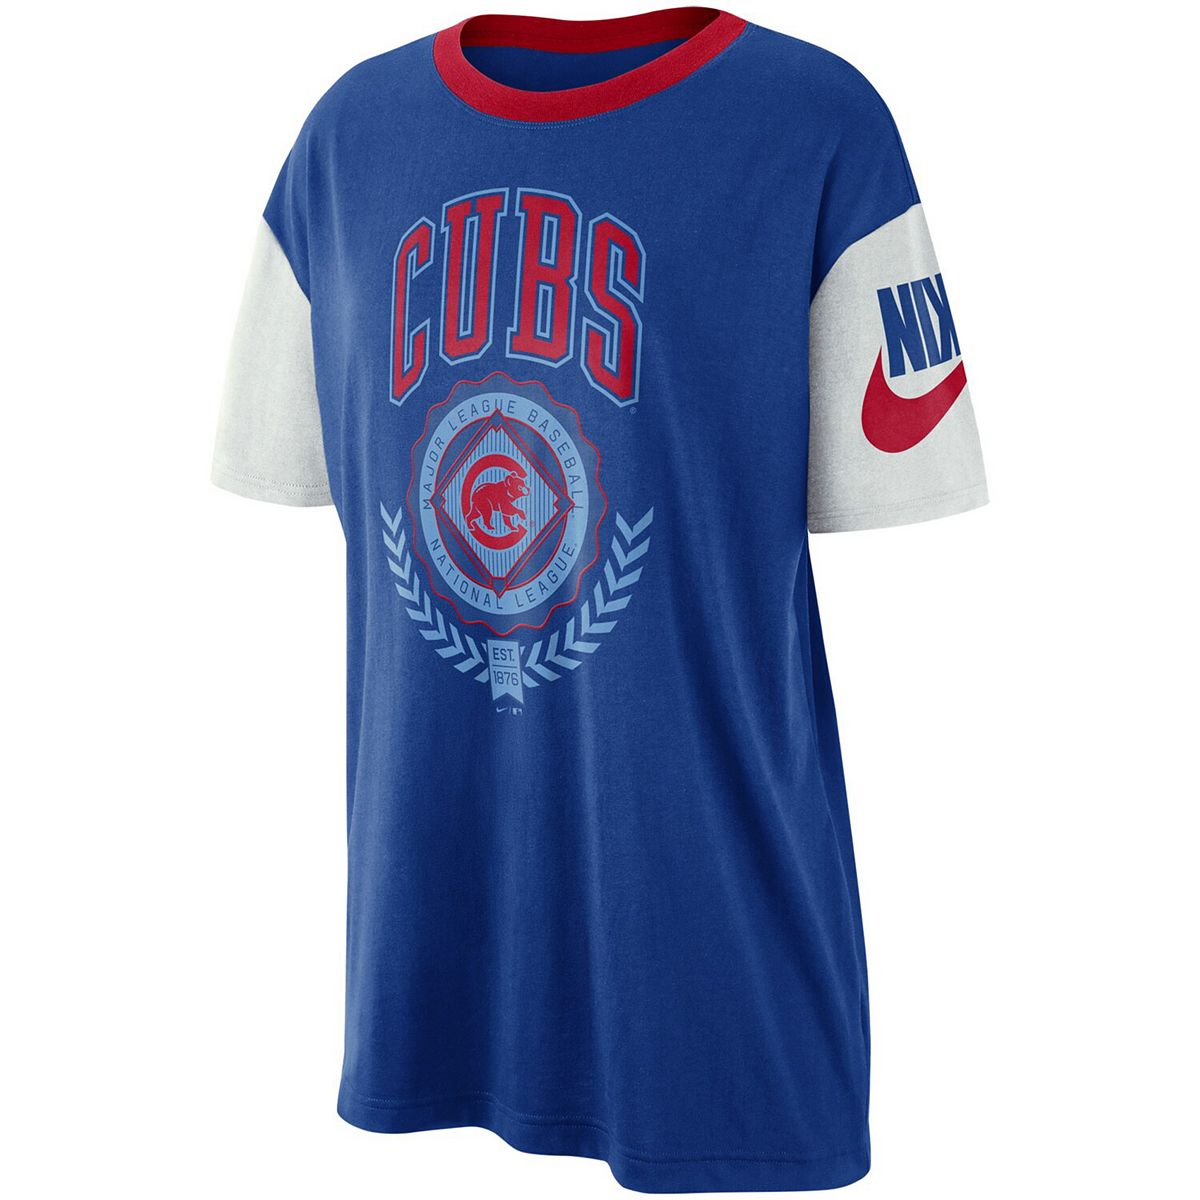 Women's Nike Royal Chicago Cubs Walk-Off Boycut T-Shirt qmnvp